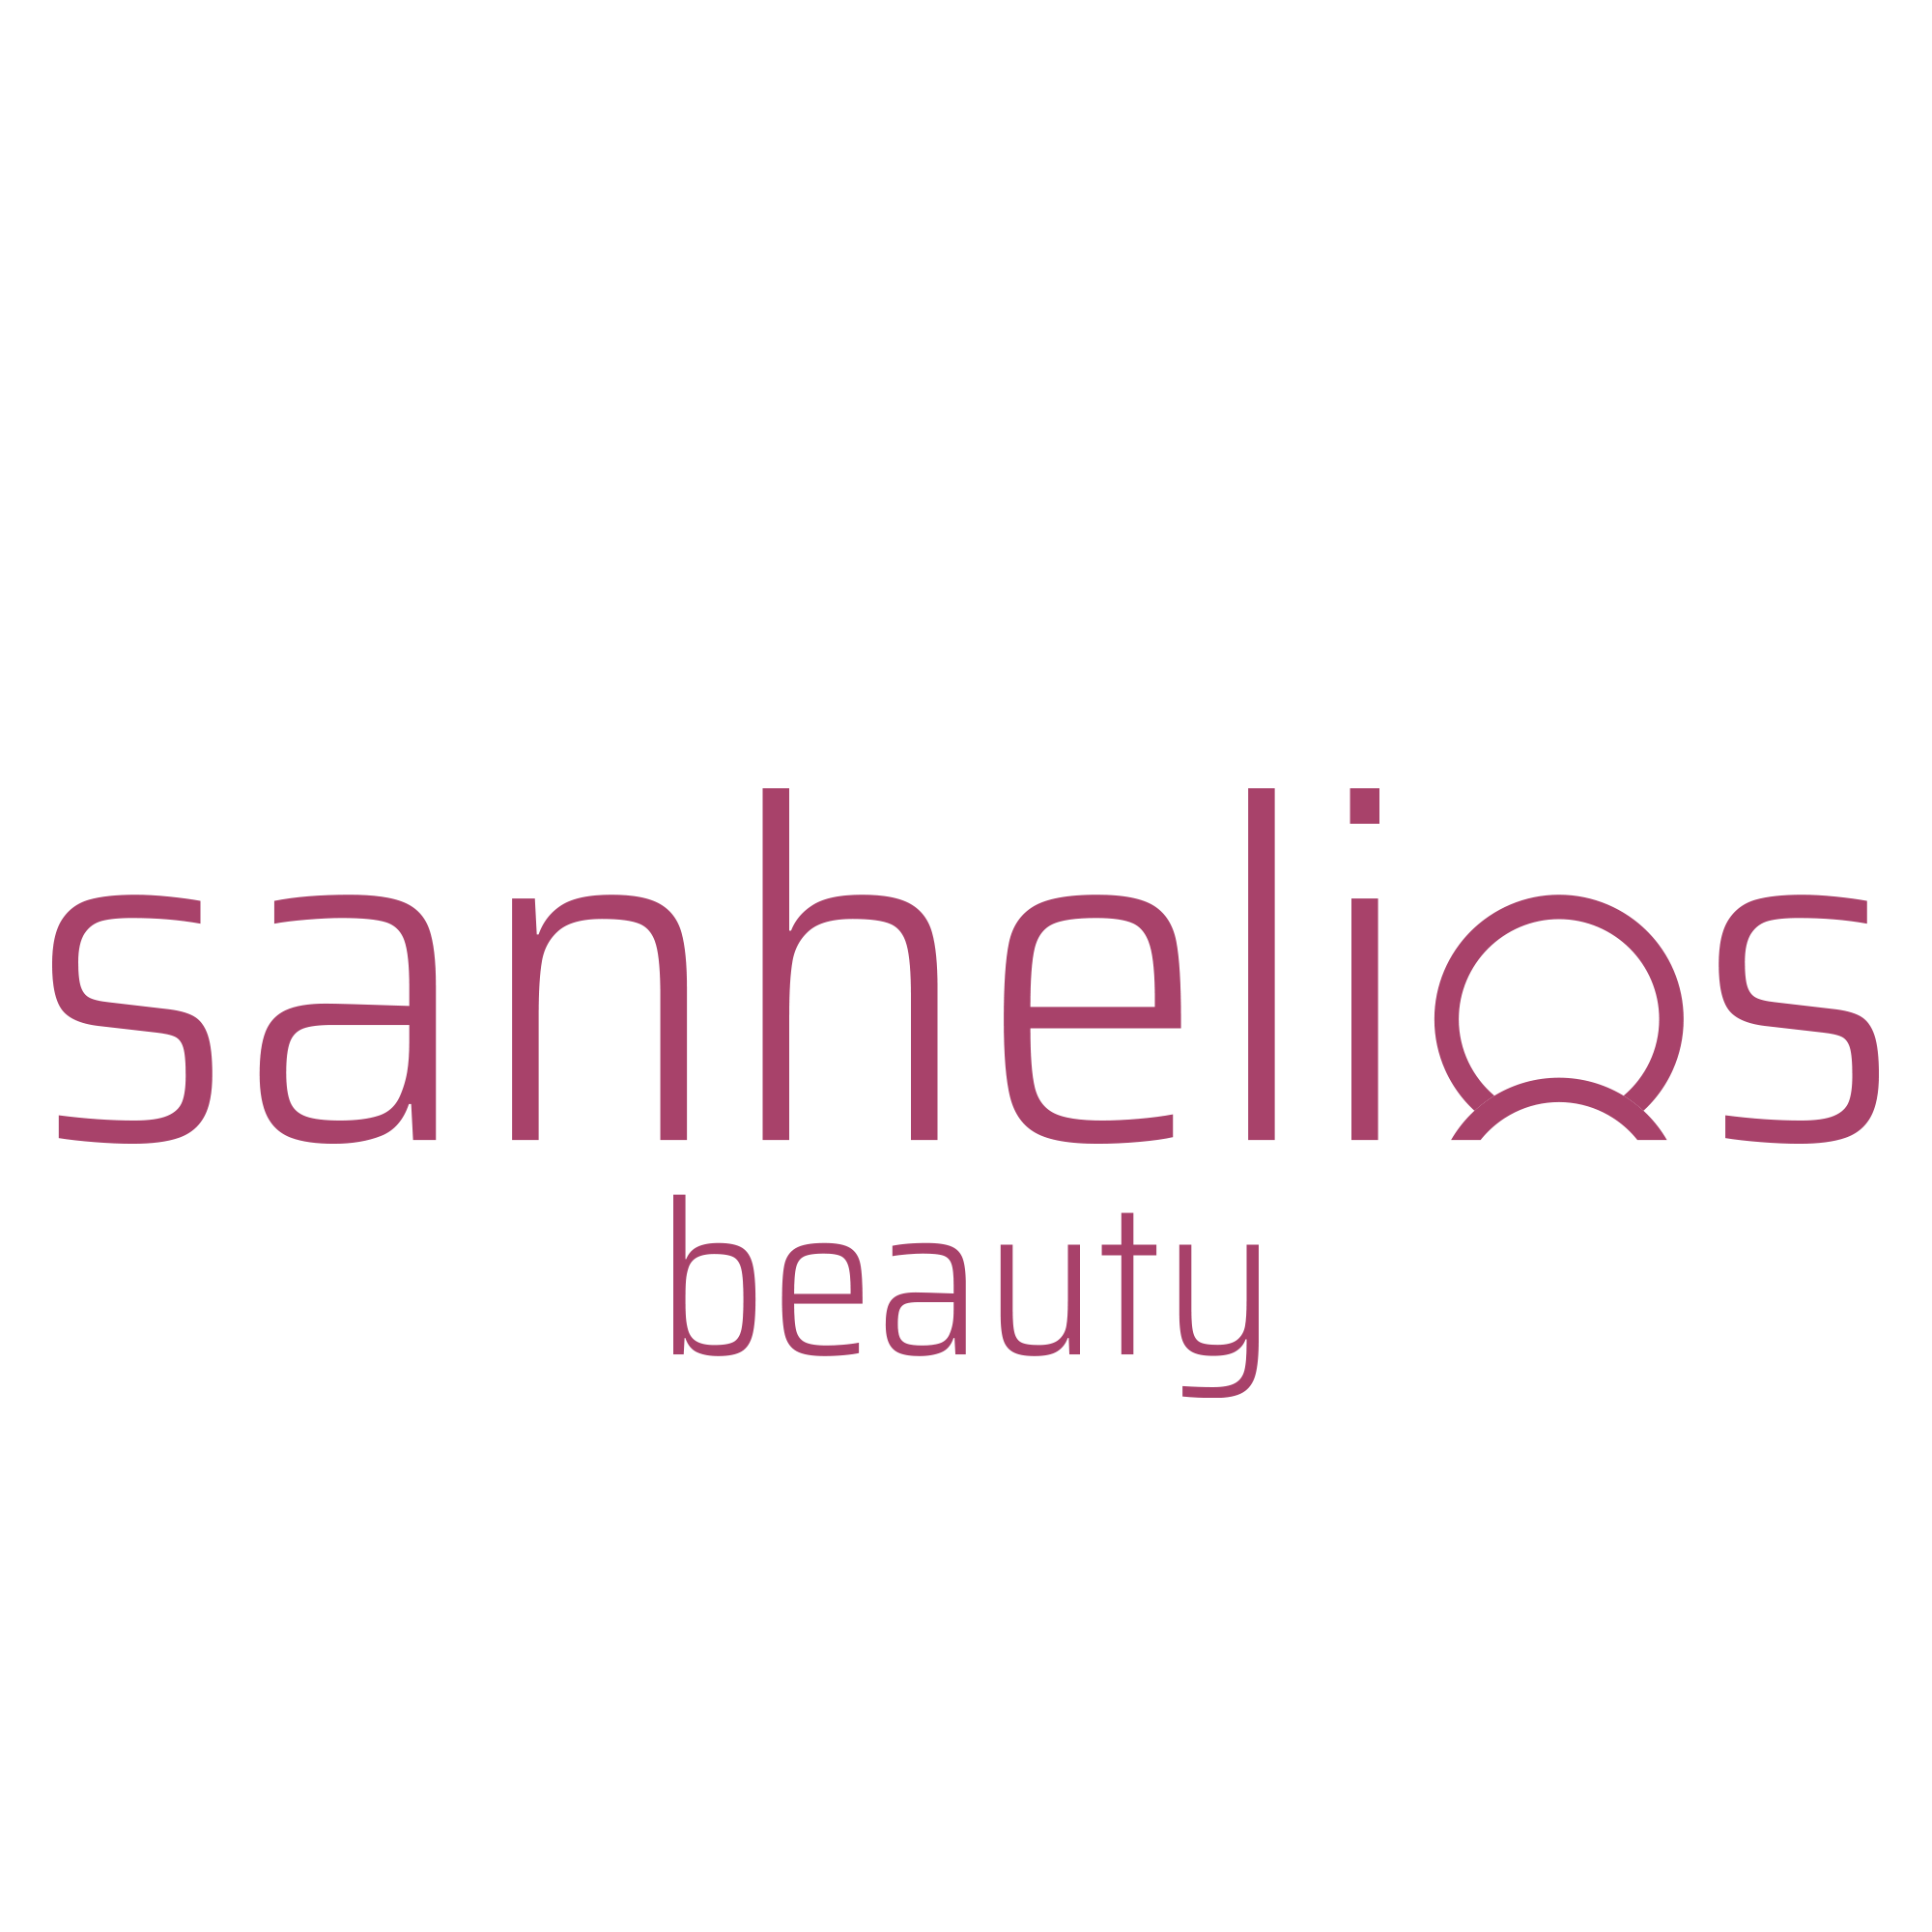 Sanhelios beauty